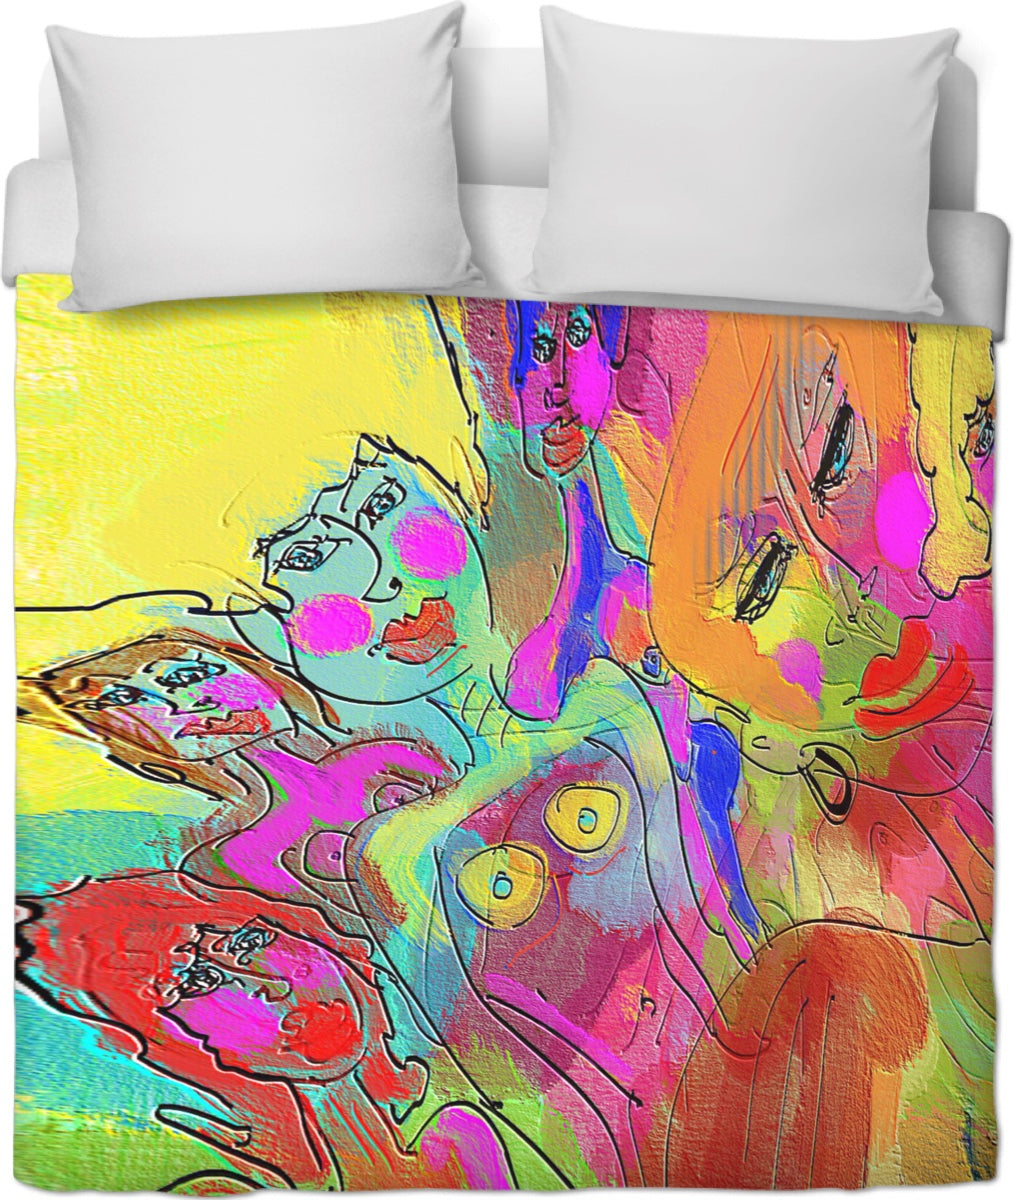 Duvet covers Abstract Painting Collection Female Power